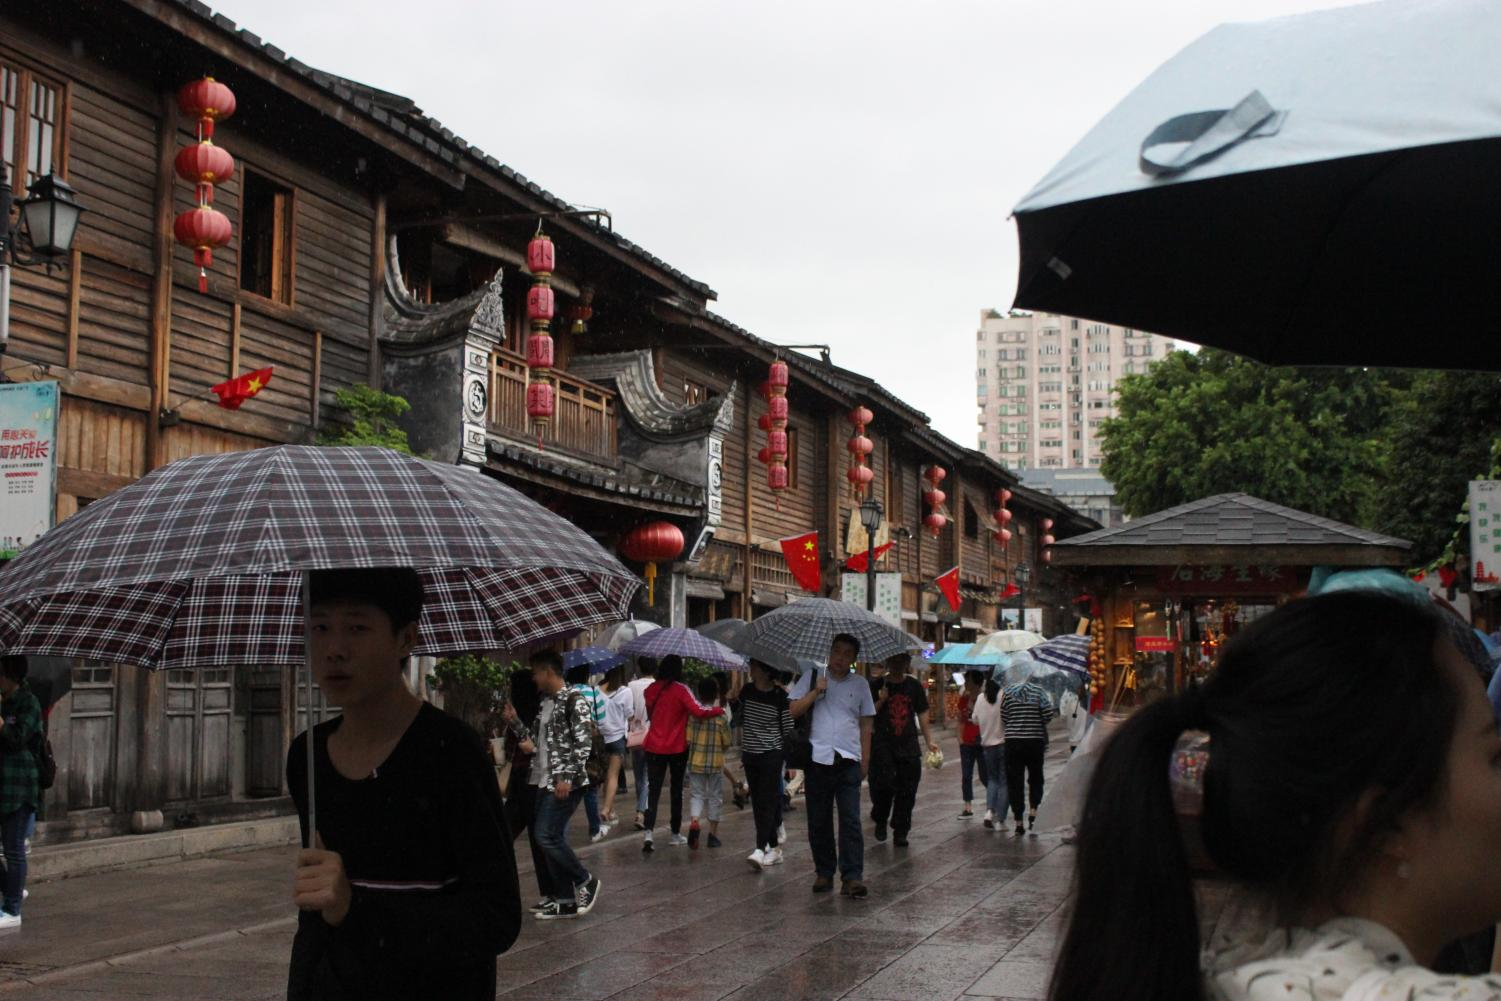 Customers brave the rainy weather for the wares sold at Three Lanes and Seven Alleys.